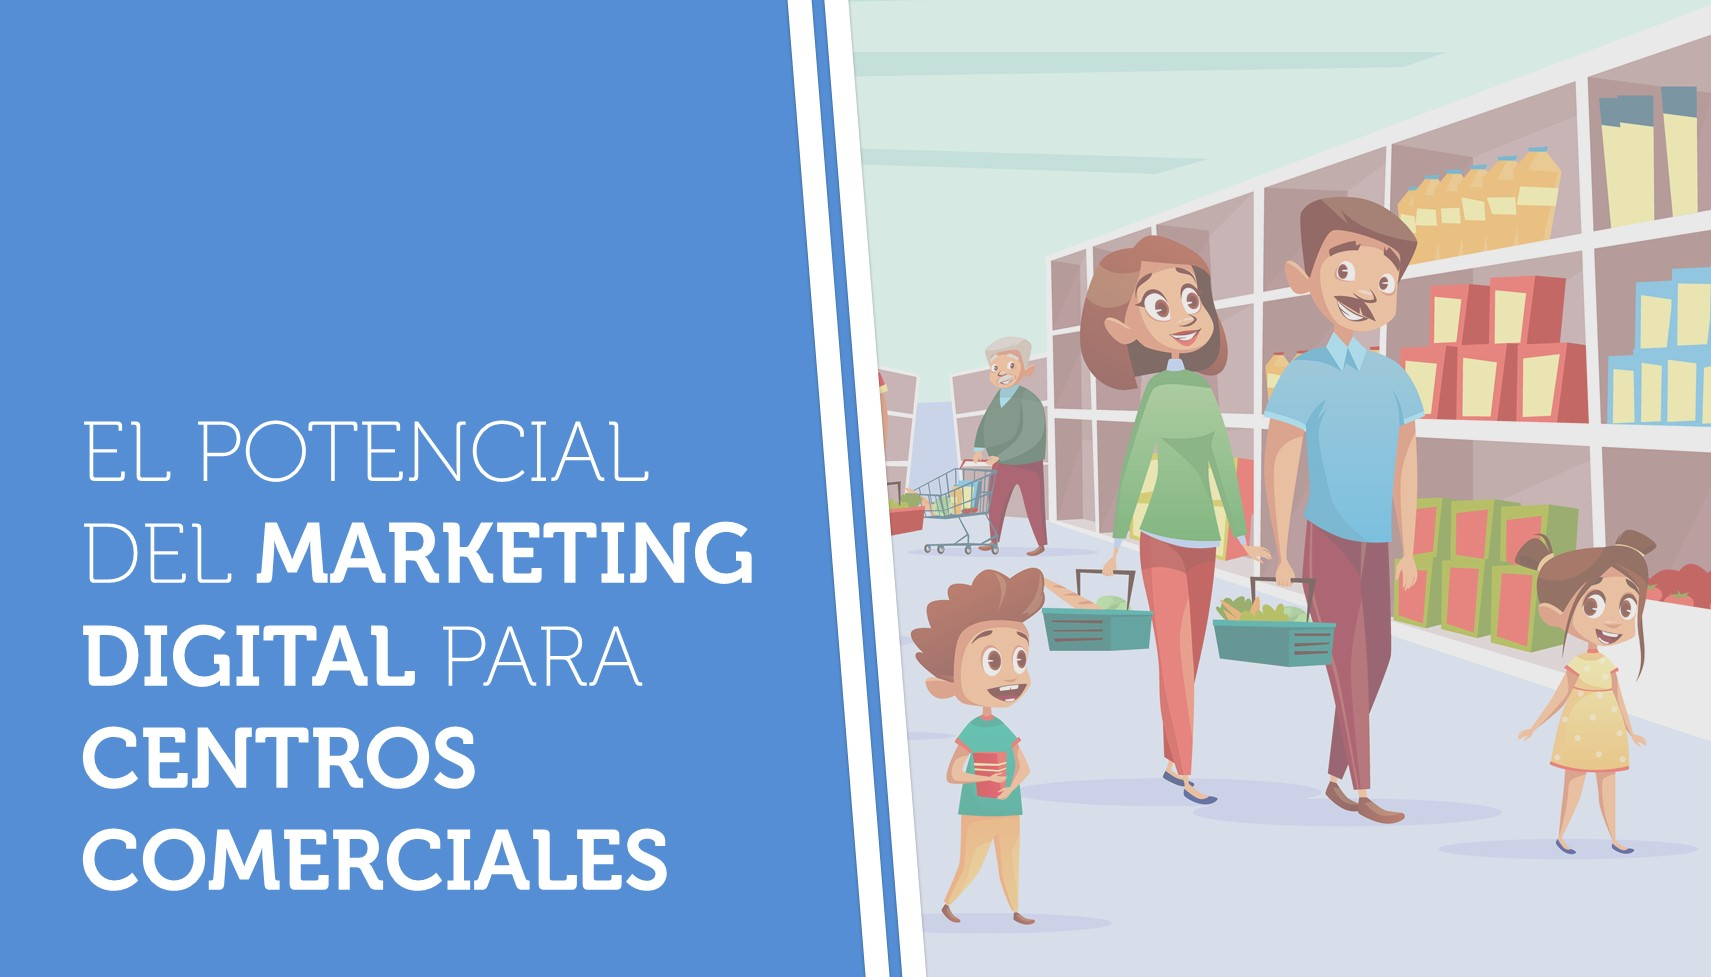 El potencial del marketing digital para centros comerciales